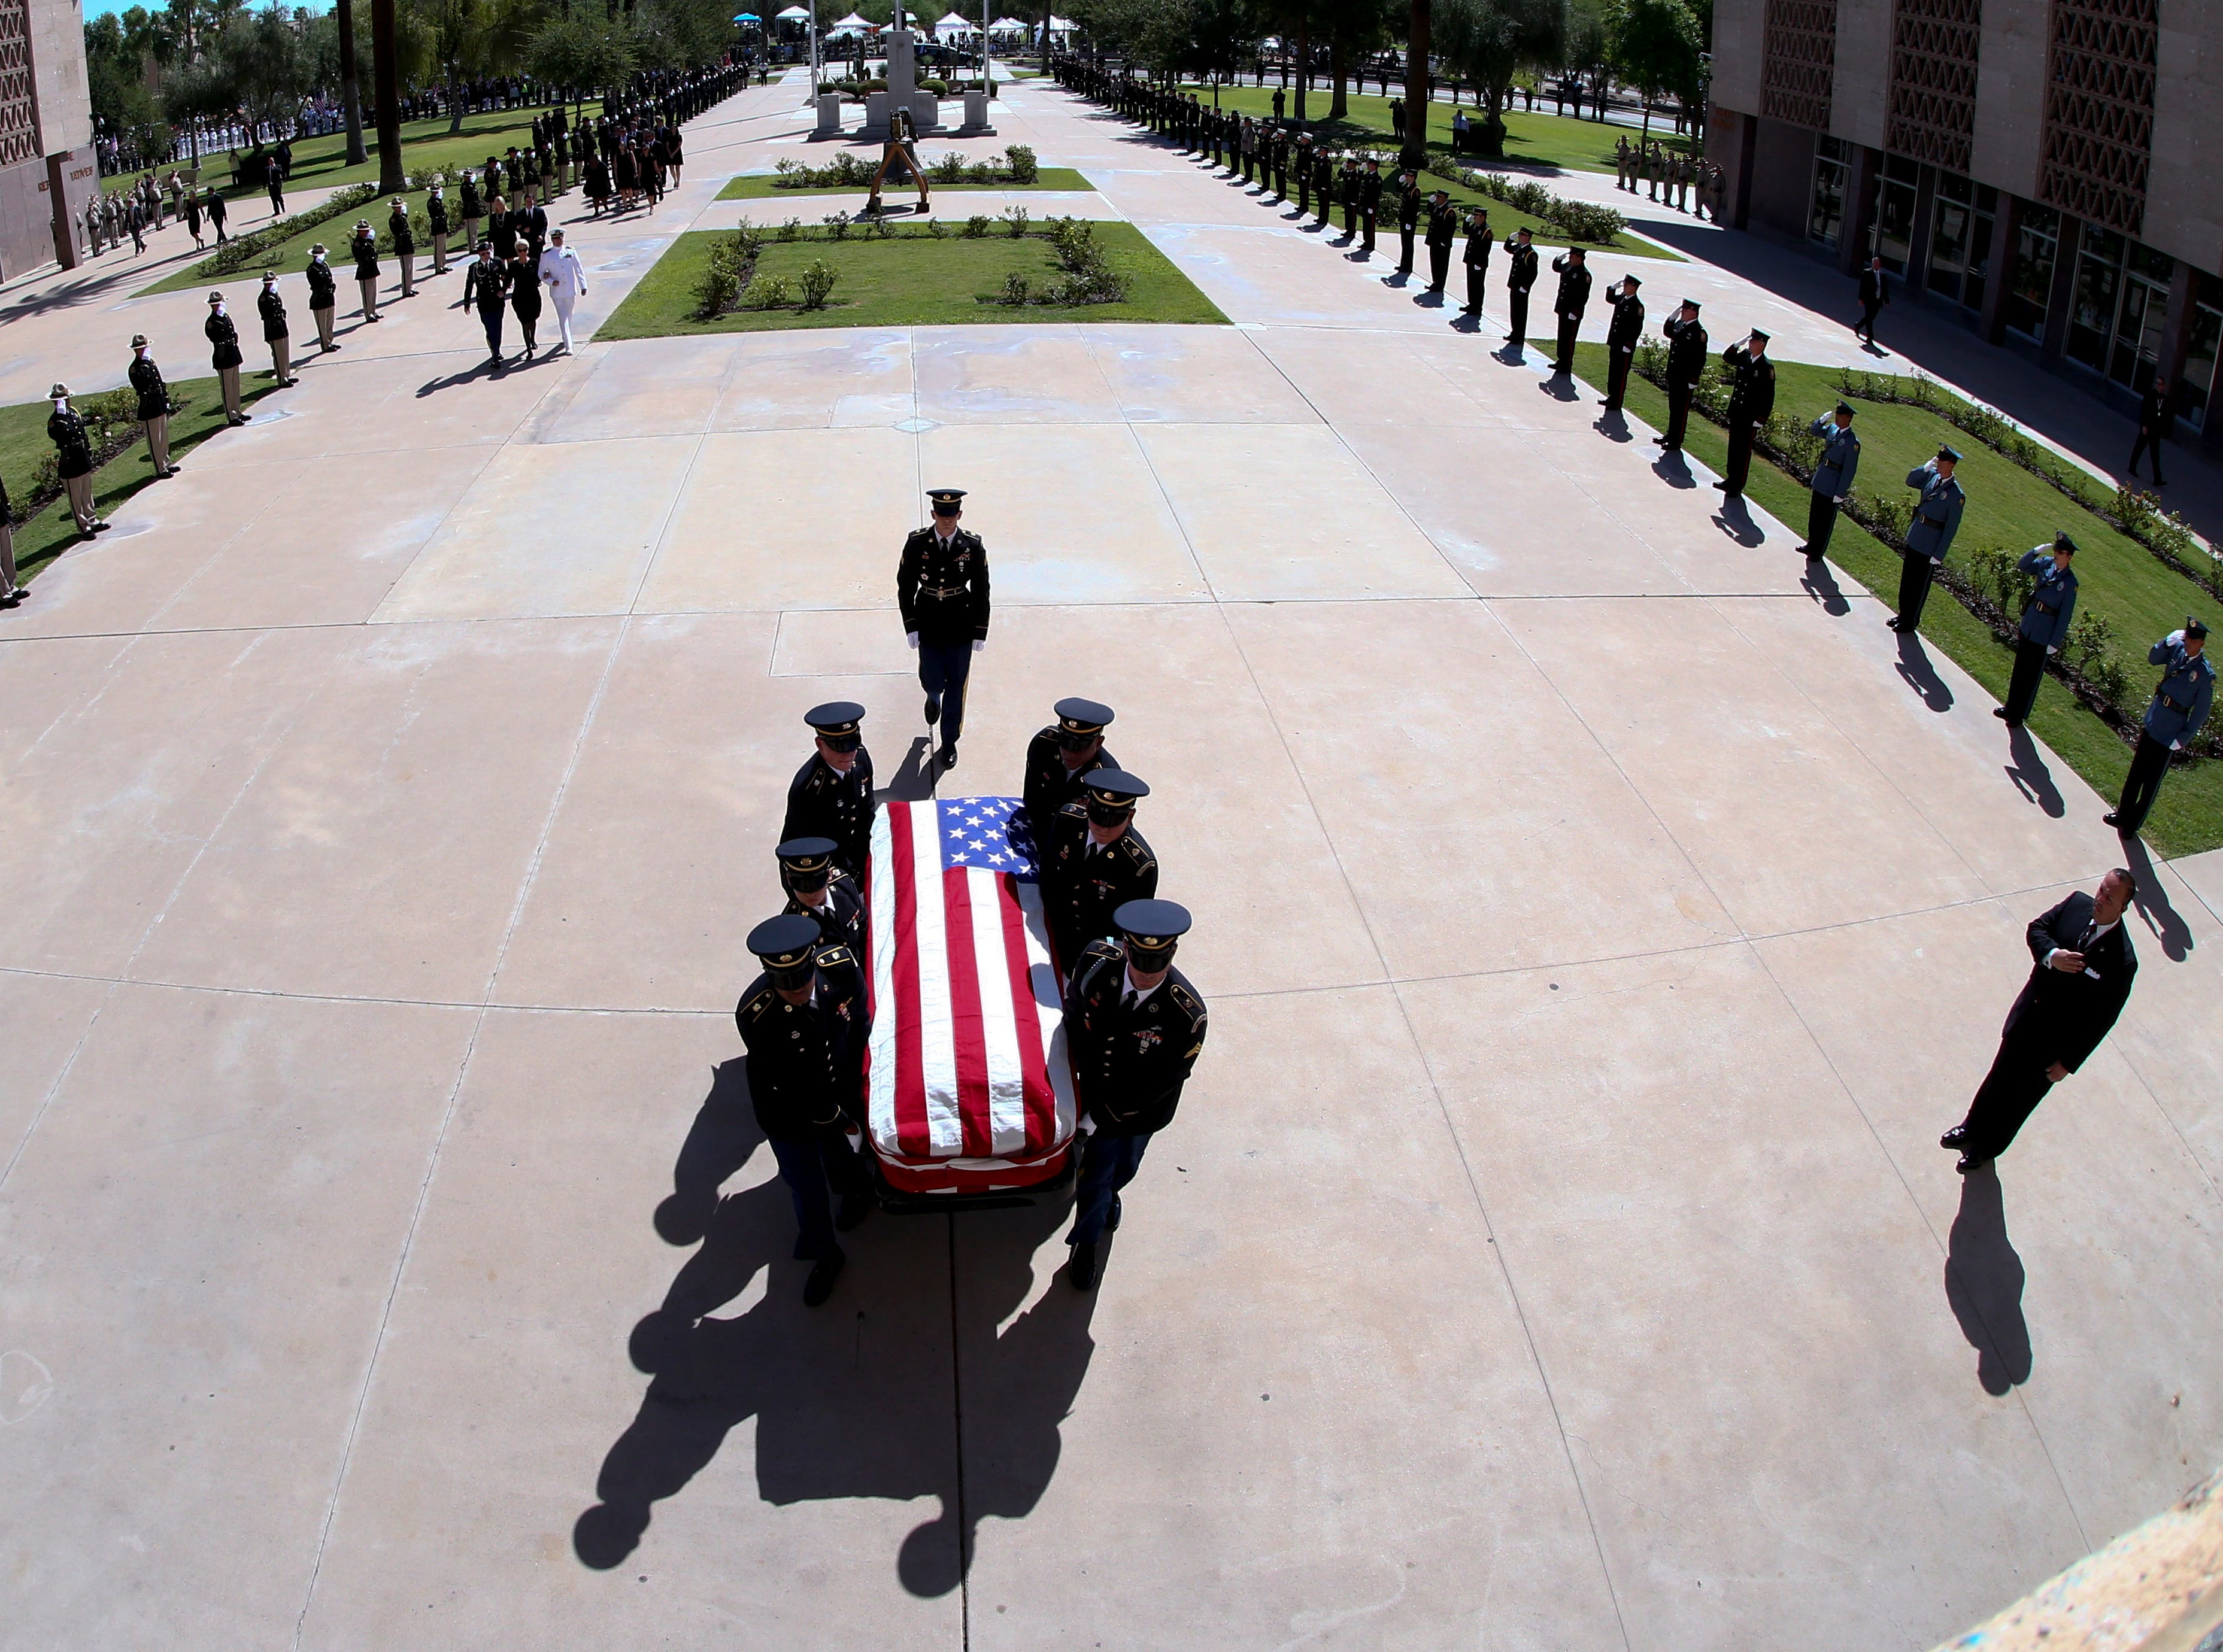 The Arizona Army National Guard honor guard carry the casket of Senator John McCain during a memorial service at the Arizona Capitol, in Phoenix, Ariz. on Aug. 29, 2018.